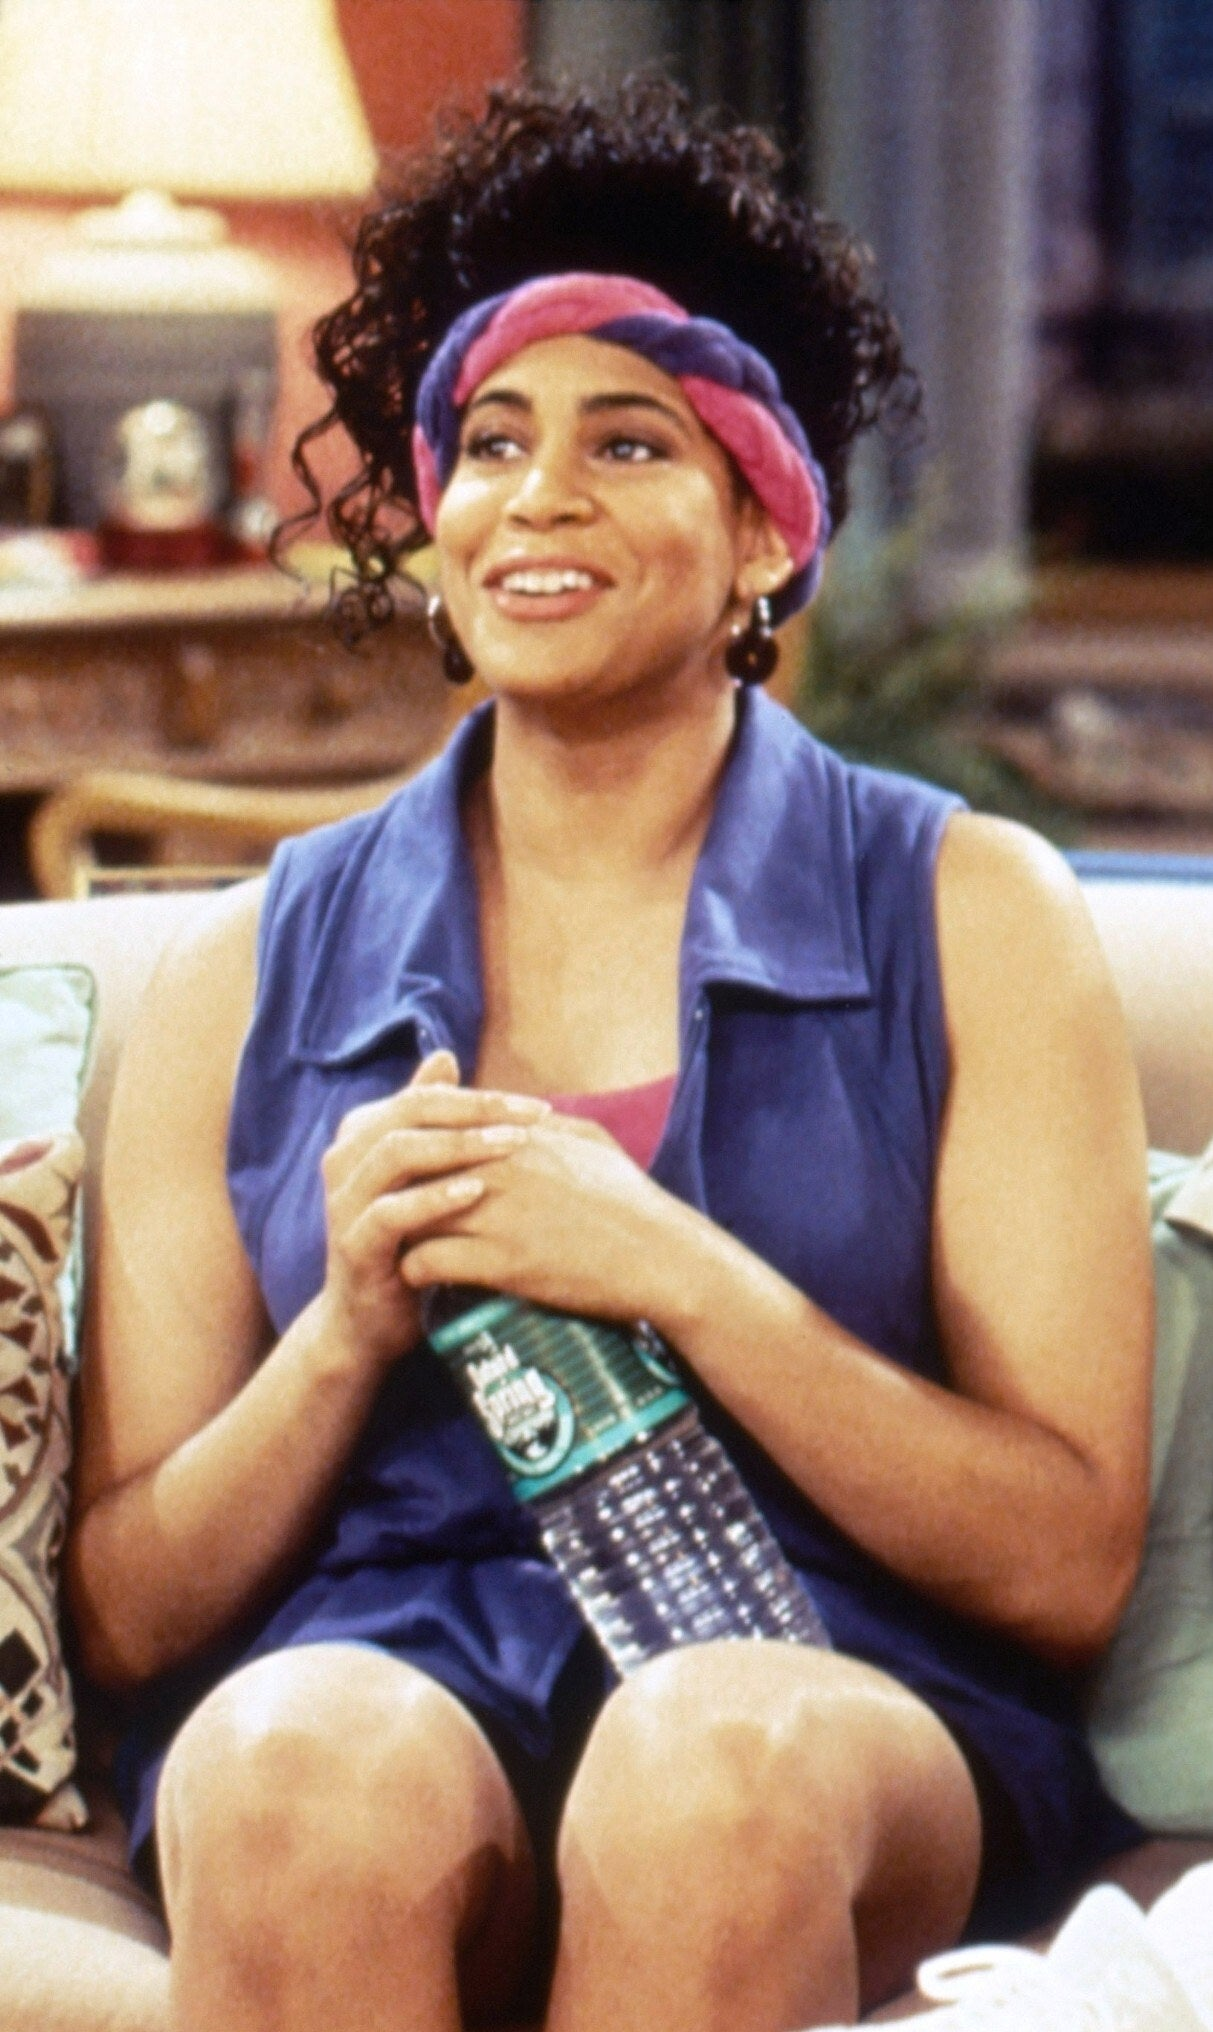 Kim Coles is sitting on a couch in the living room while holding a bottle of Poland Spring water, as she gazes outward